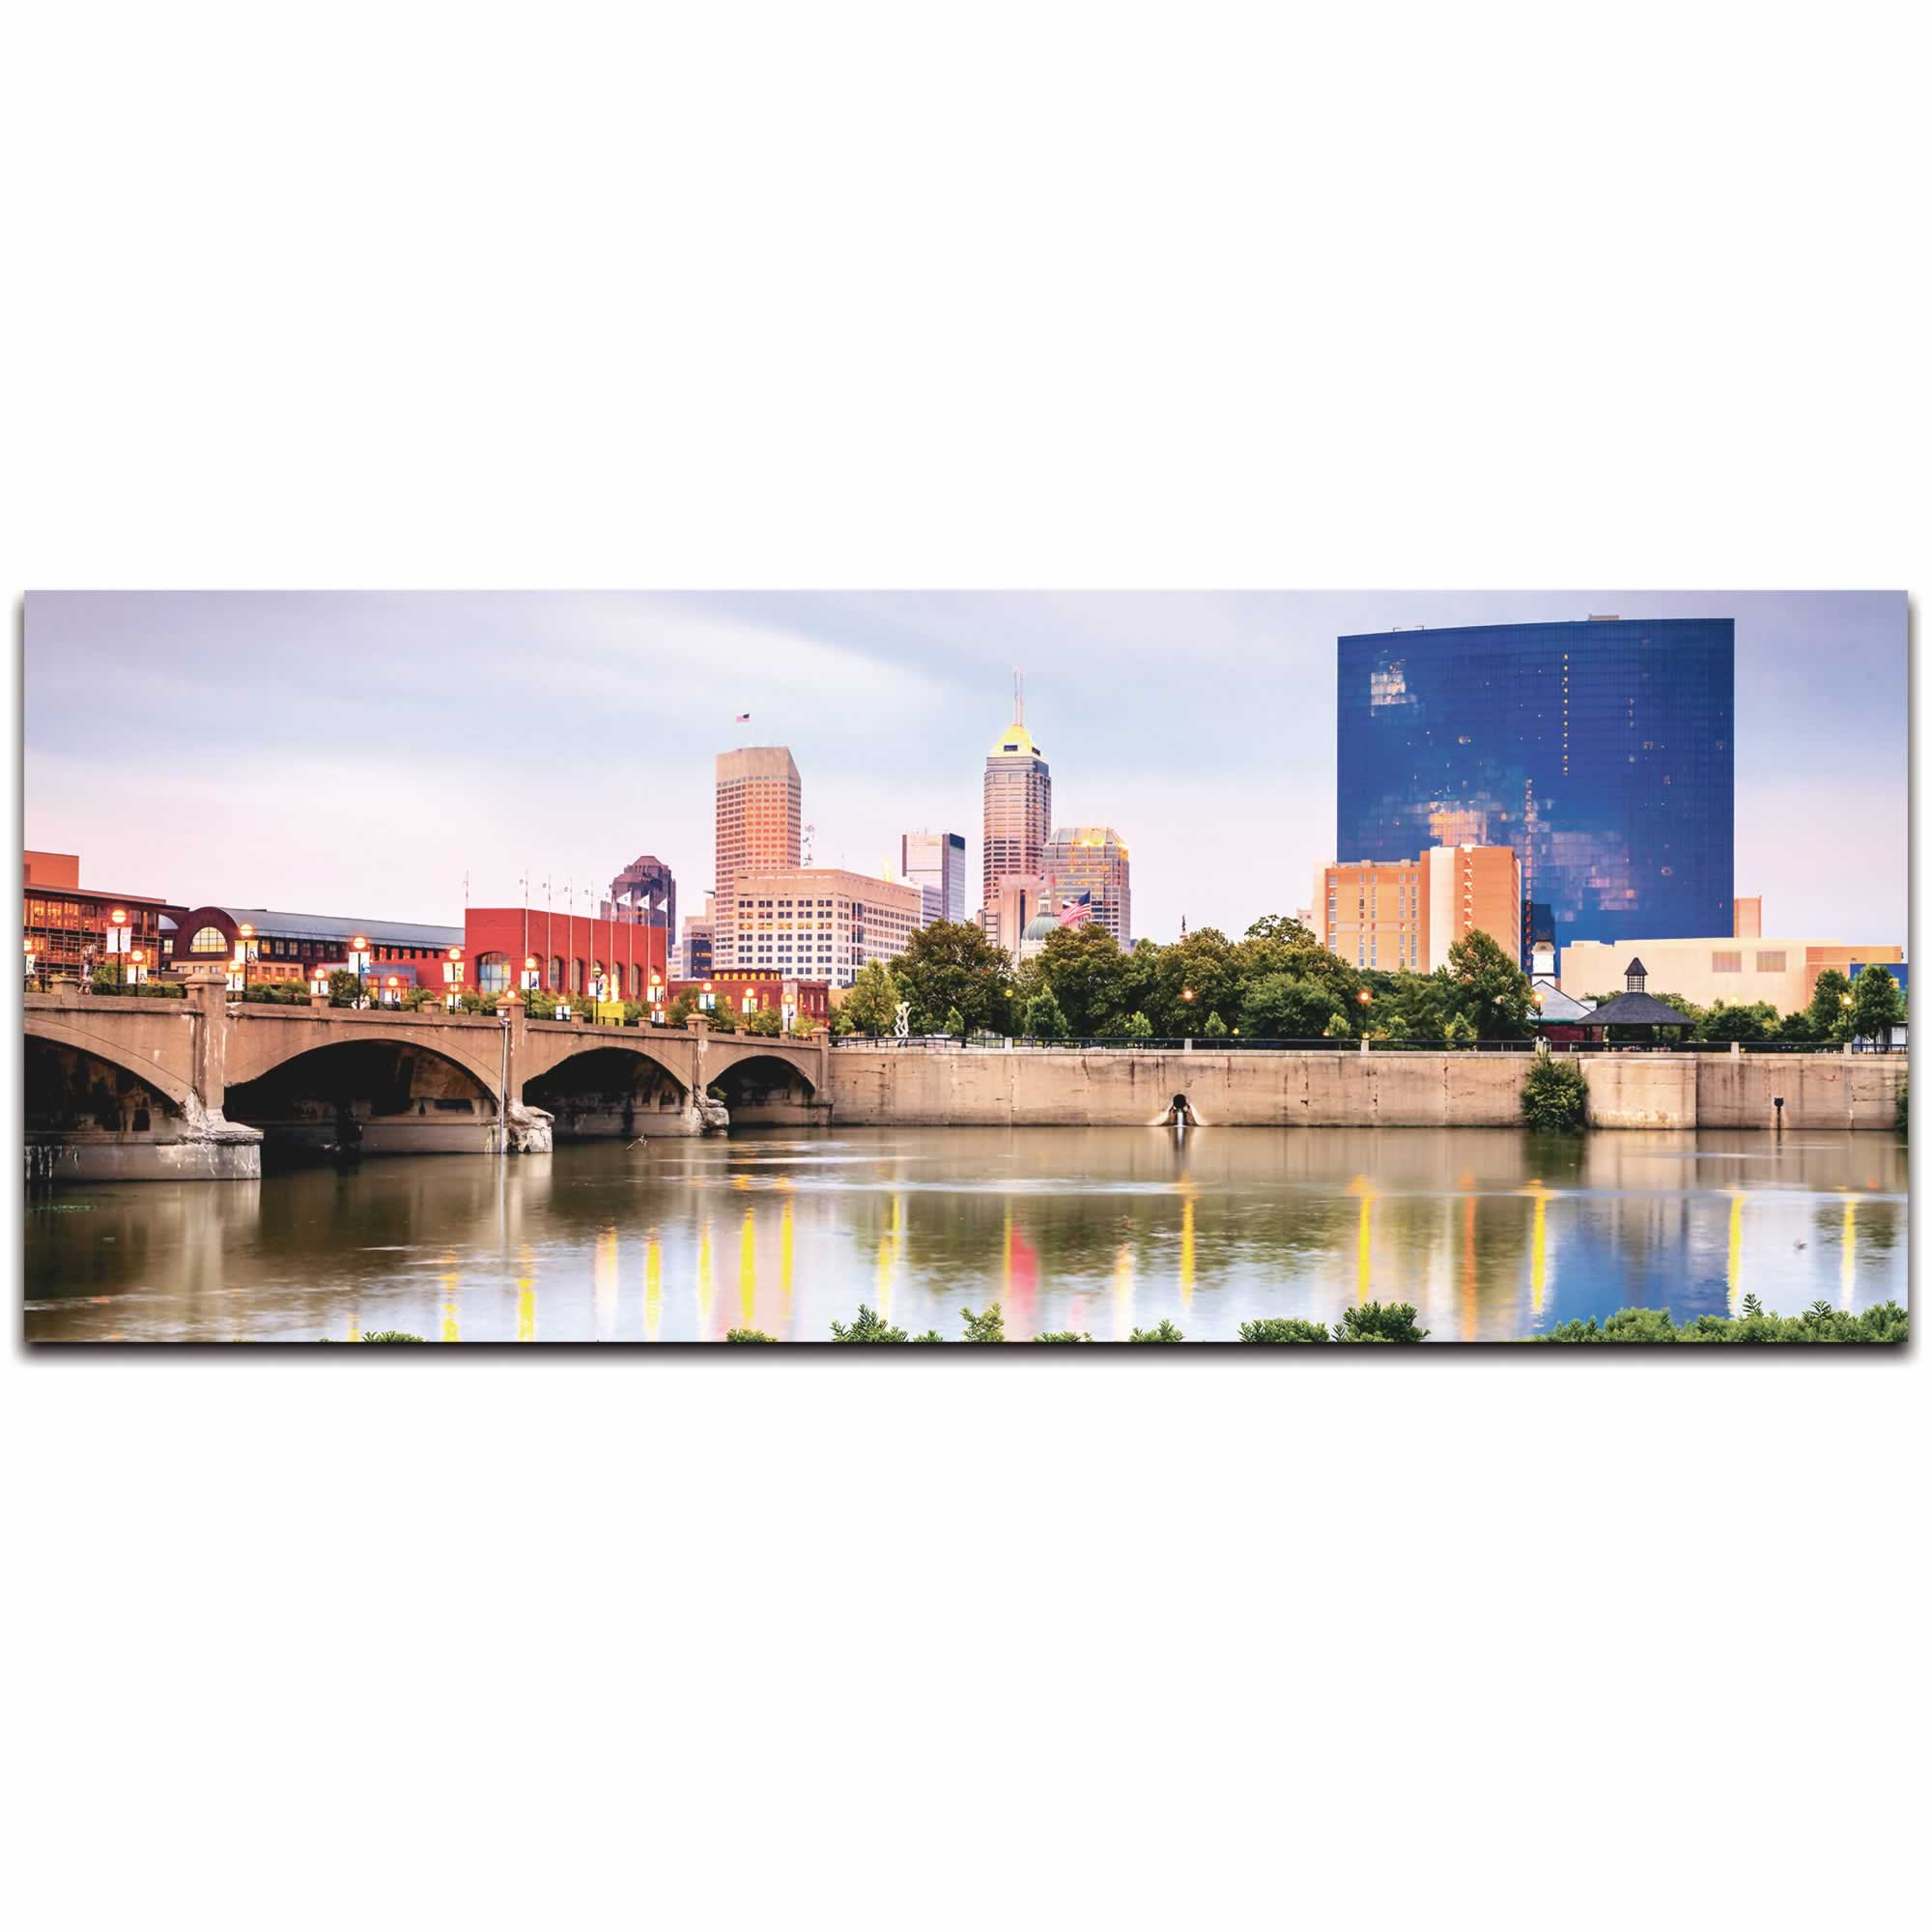 Indianapolis City Skyline - Urban Modern Art, Designer Home Decor, Cityscape Wall Artwork, Trendy Contemporary Art - Alternate View 2